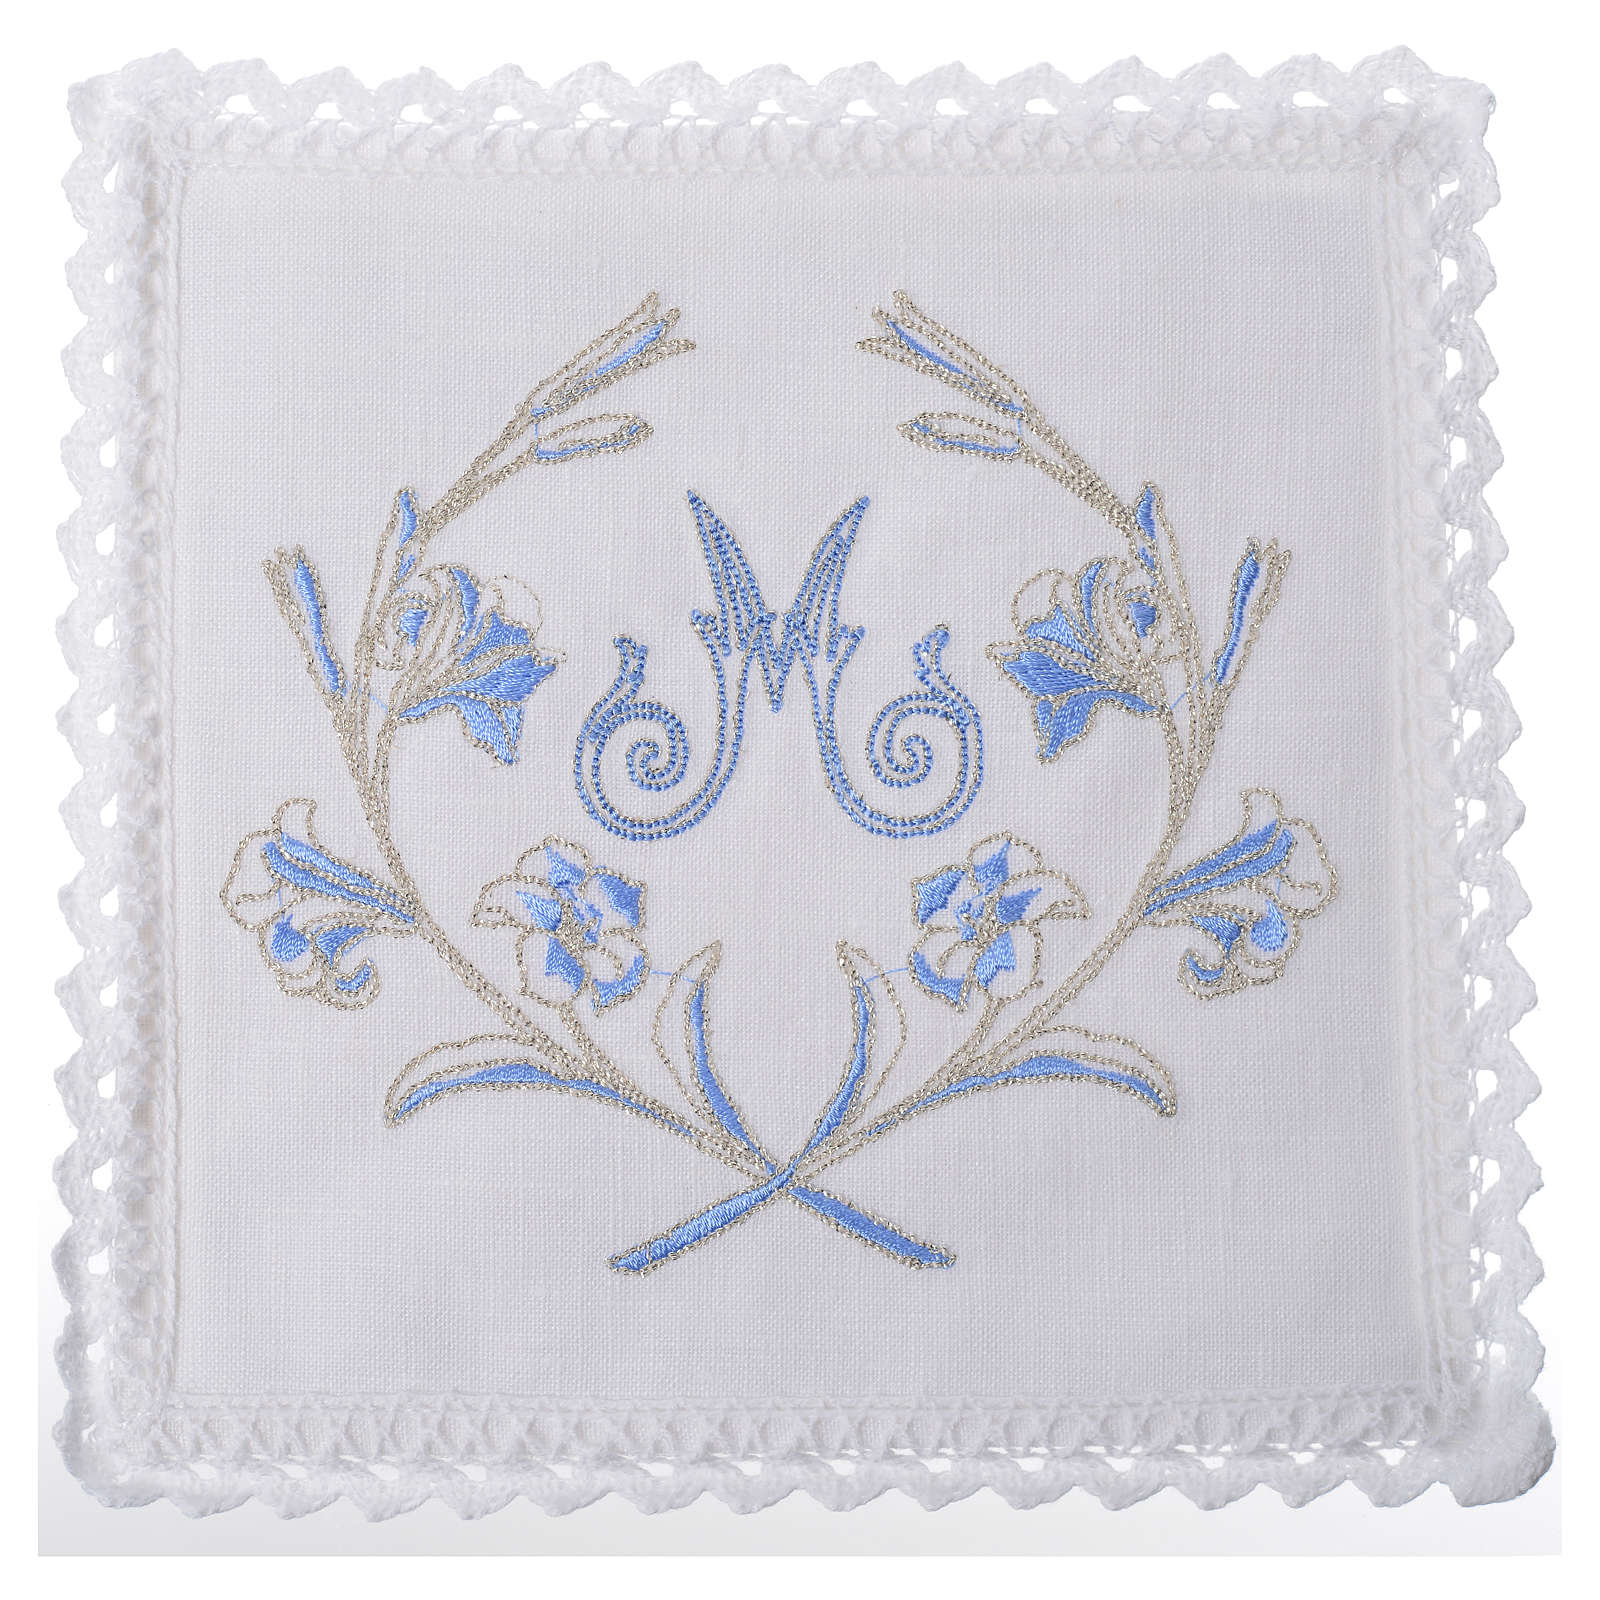 Altar linens set, with Marian symbol and decorations 4